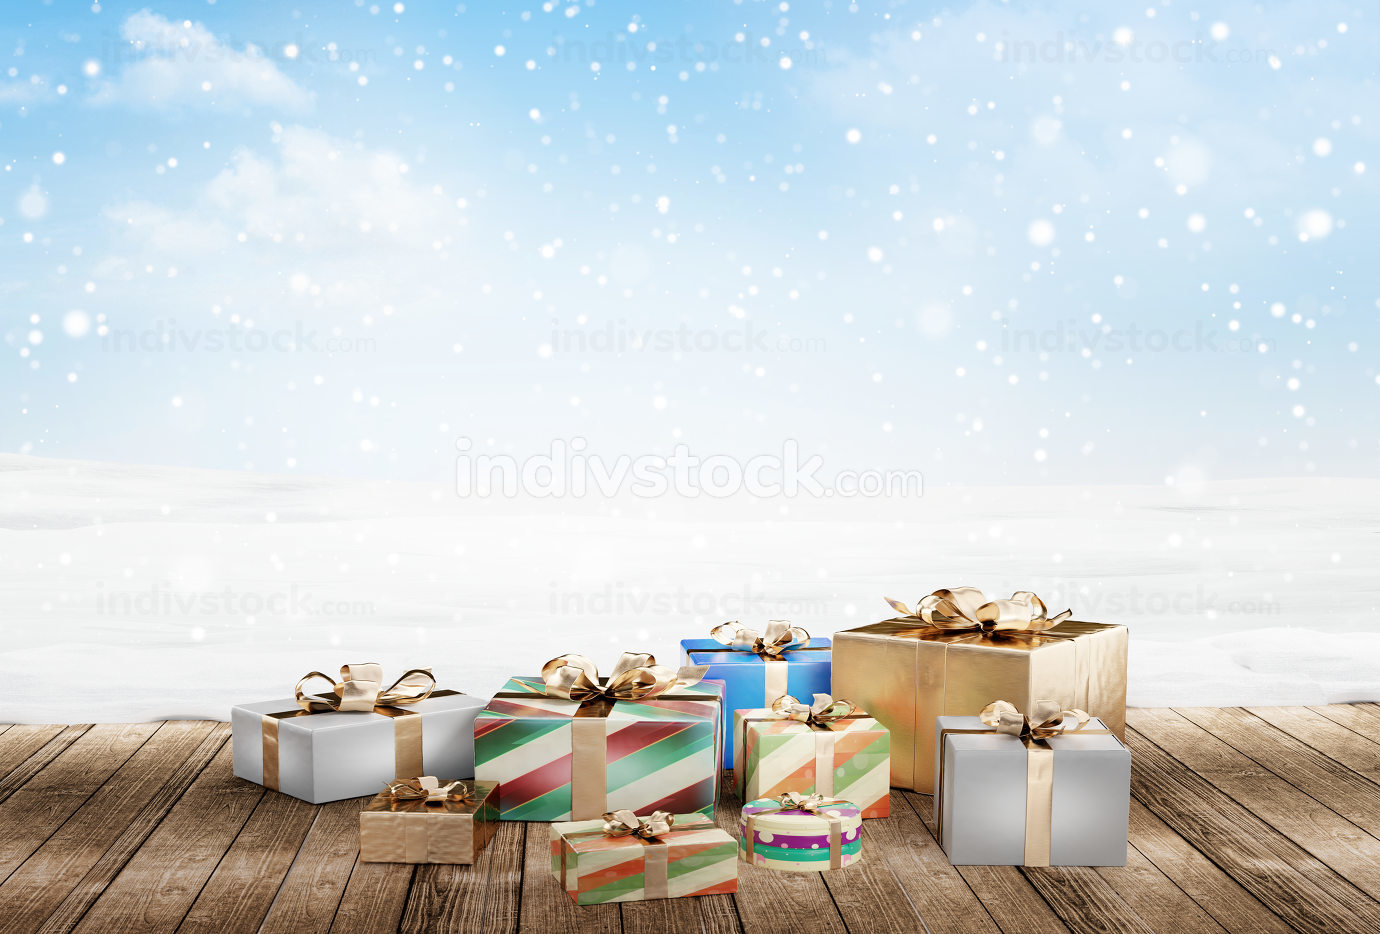 Christmas presents 3d-illustration festive christmas gifts